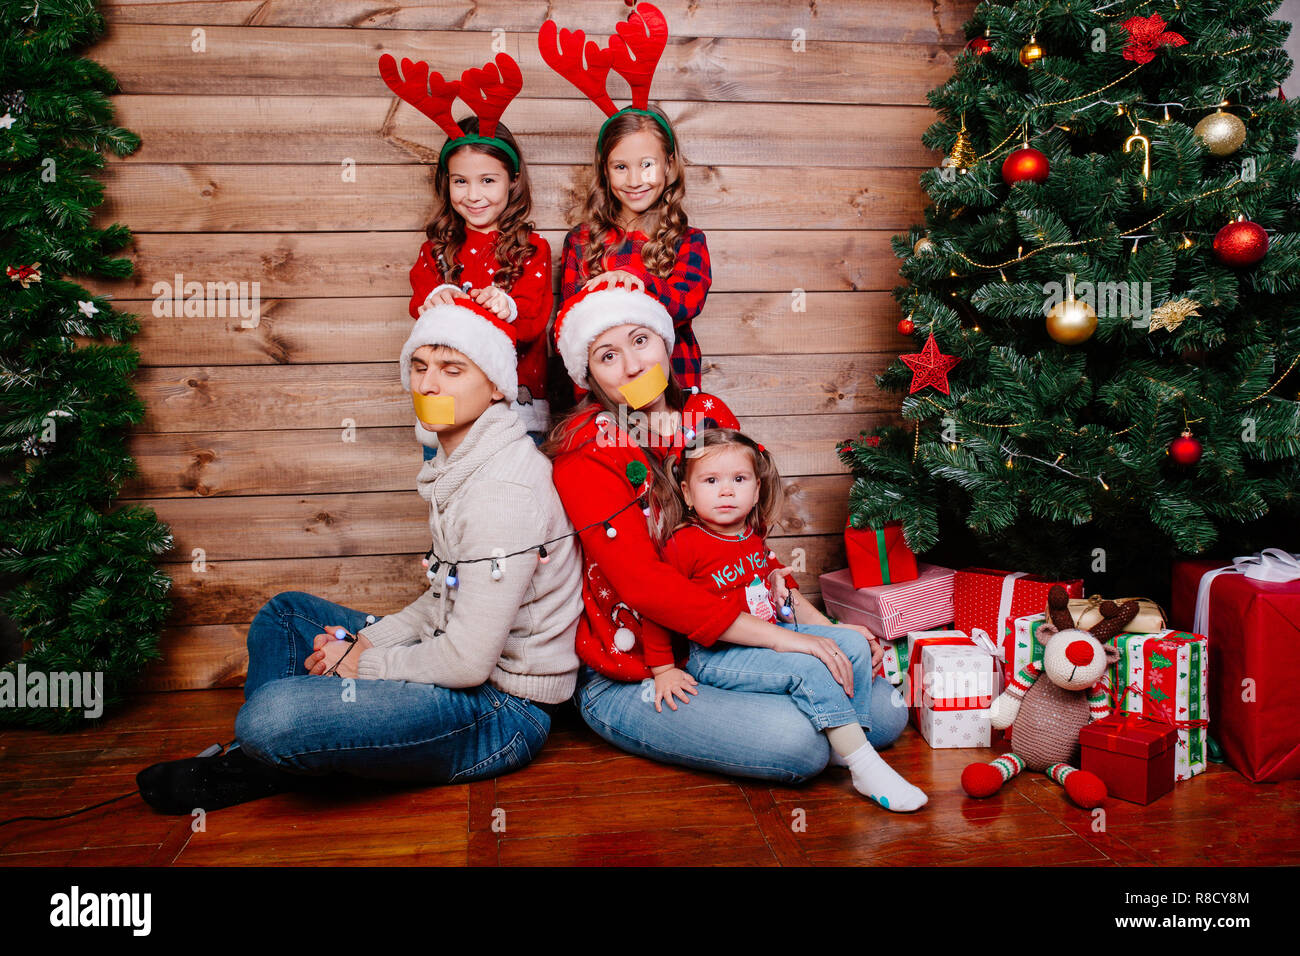 Bad Moms Christmas Kids.Bad Kids And Father And Mother Tied Up With Garland Near